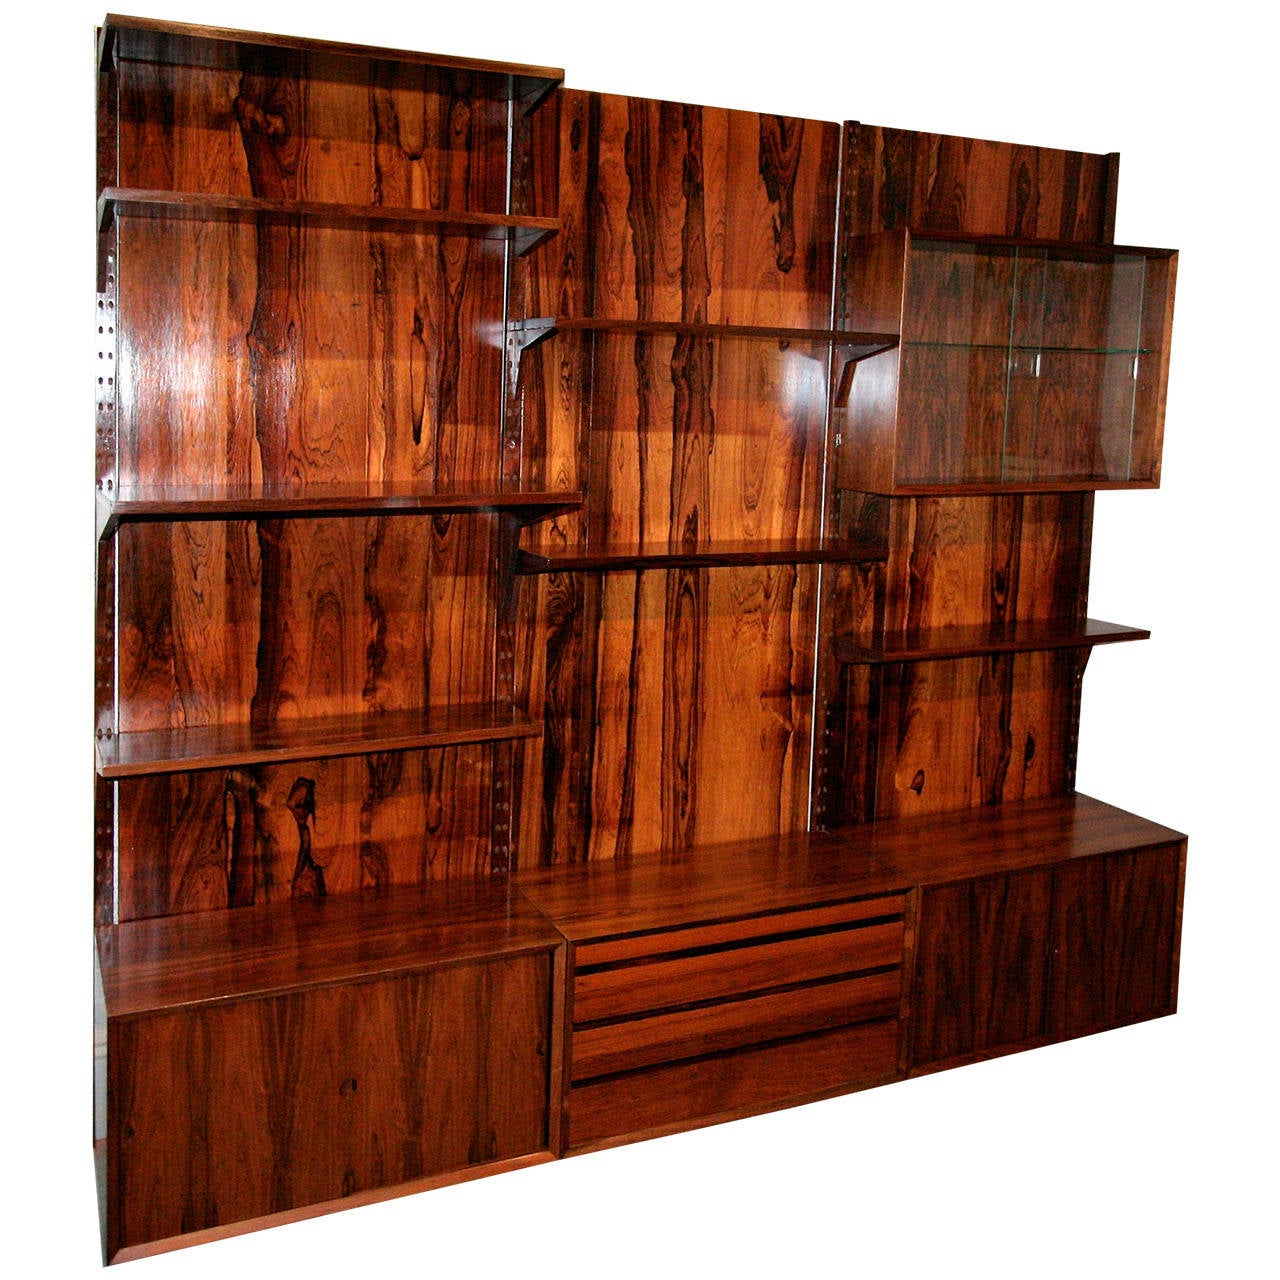 Brazilian jacaranda wood shelving unit from the 1960s with adjustable shelves and cabinets. Two hanging cabinets, one with glass doors, the other with jacaranda doors (not shown). Three cabinets at bottom, two with one shelf, the other with drawers.